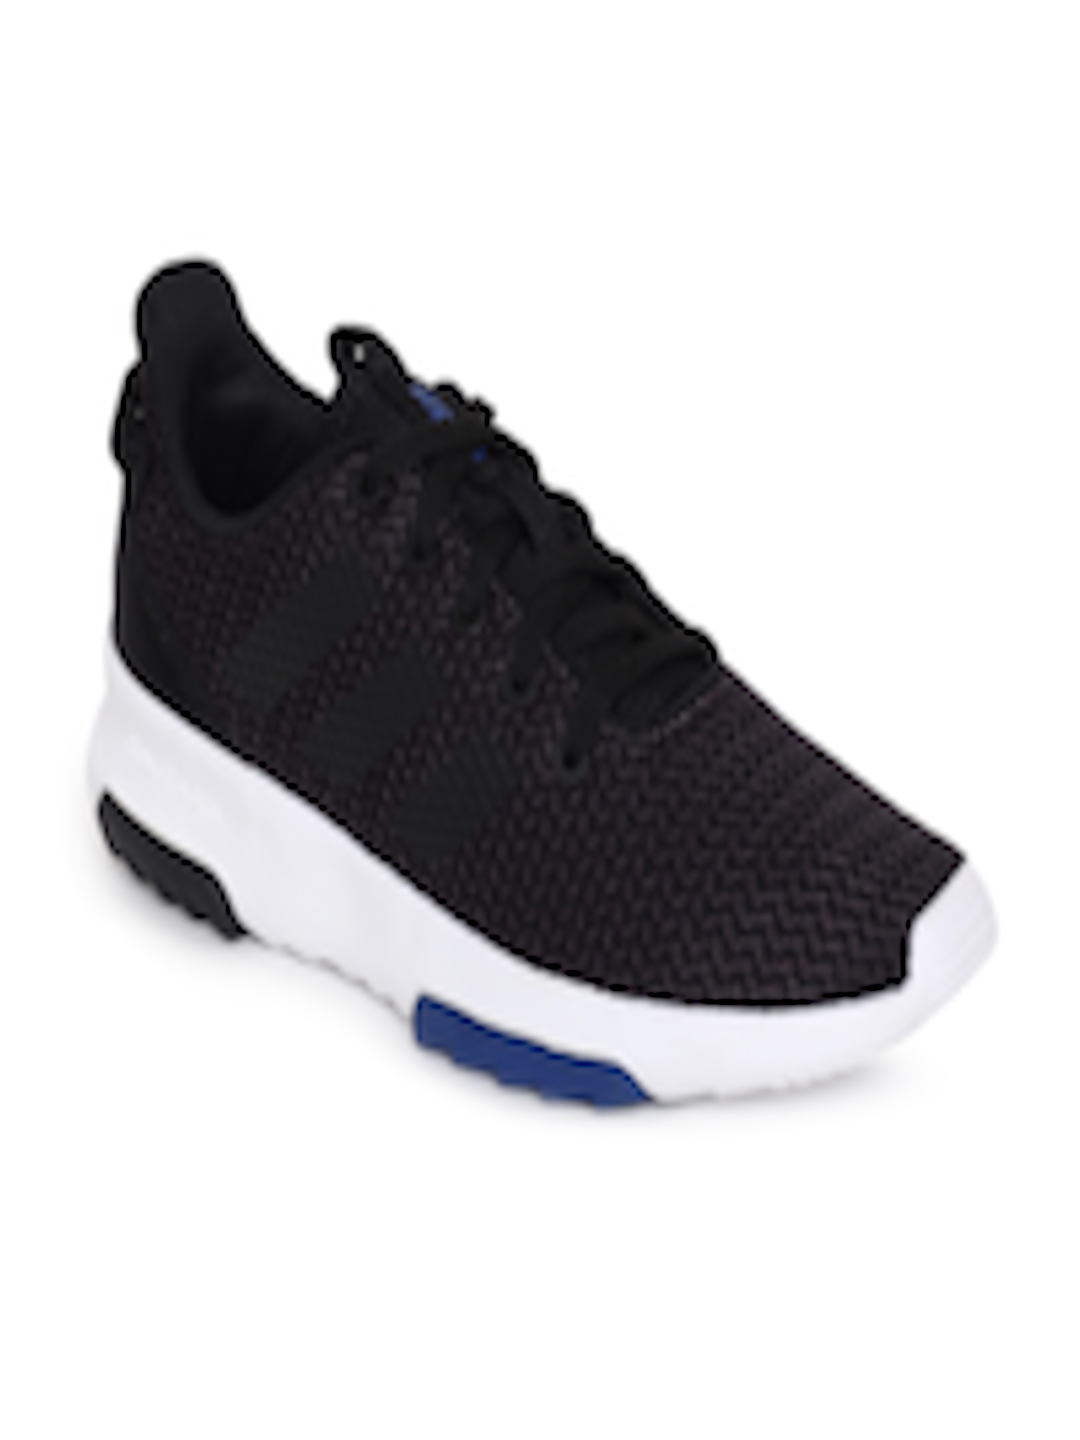 bafd1cb76be6c8 Buy ADIDAS Kids Black Solid CF RACER TR K Running Shoes - Sports Shoes for  Unisex 6842156